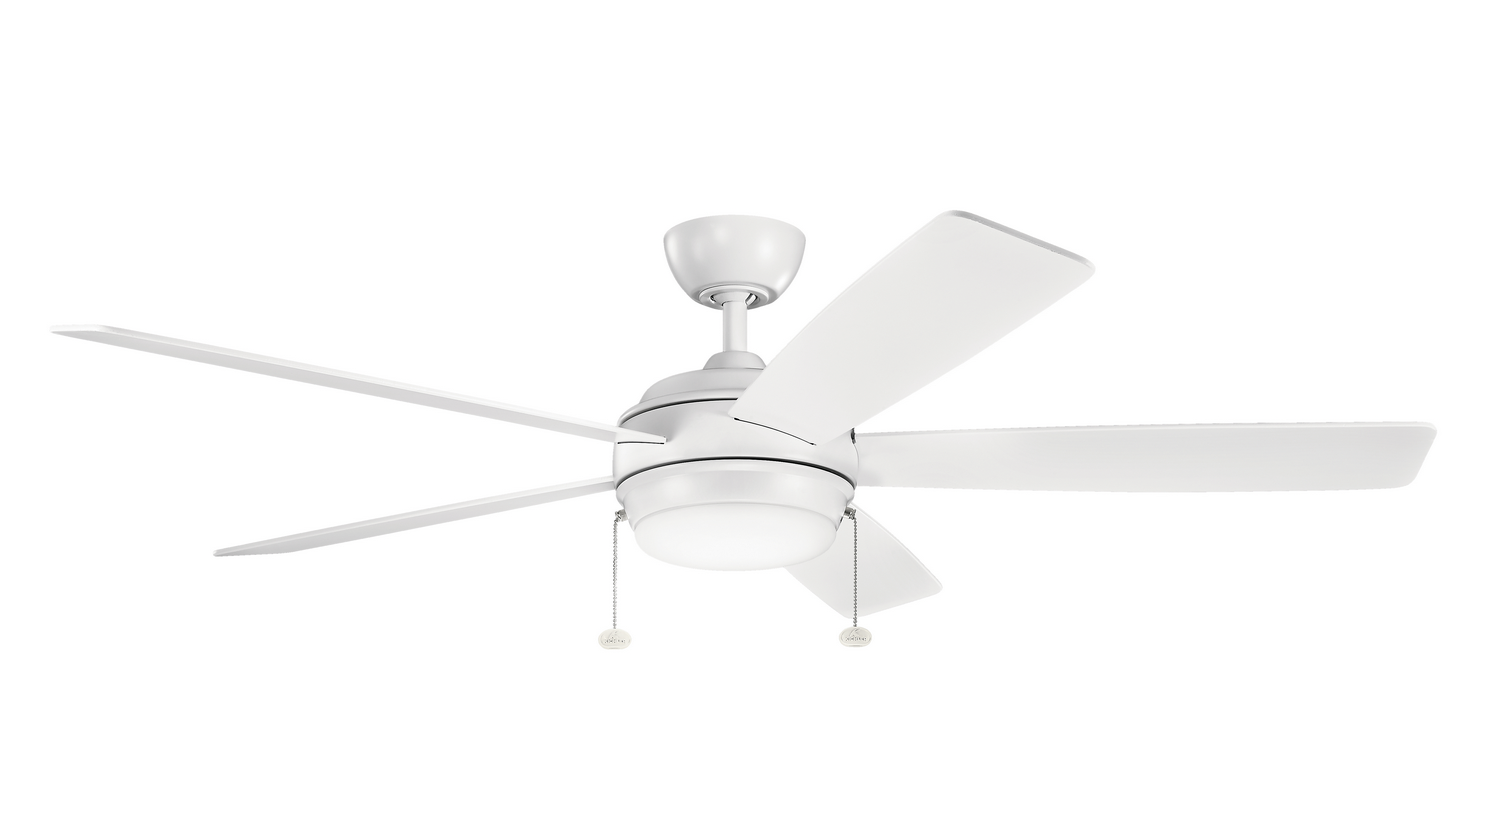 60 inchCeiling Fan from the Starkk collection by Kichler 330180MWH